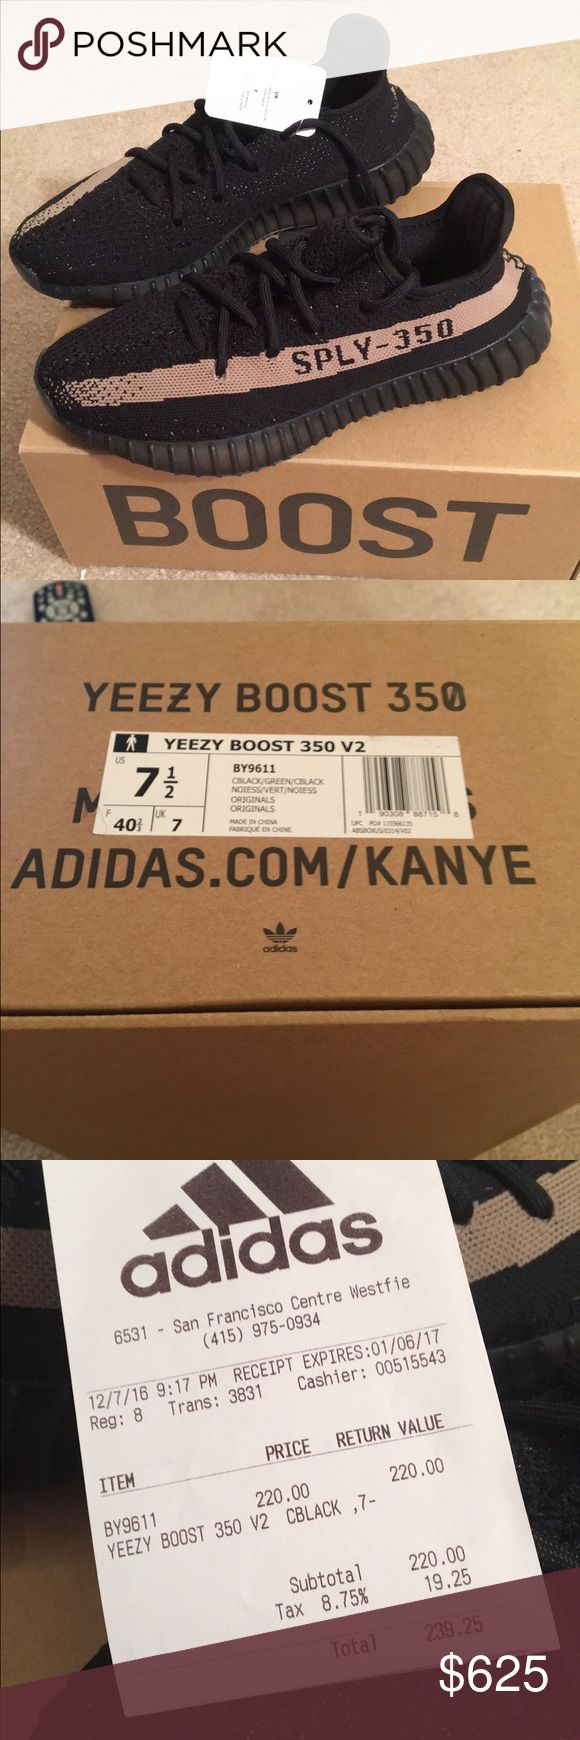 yeezy boost 350 for sale under $100 yeezy boost size 8 100 authentic